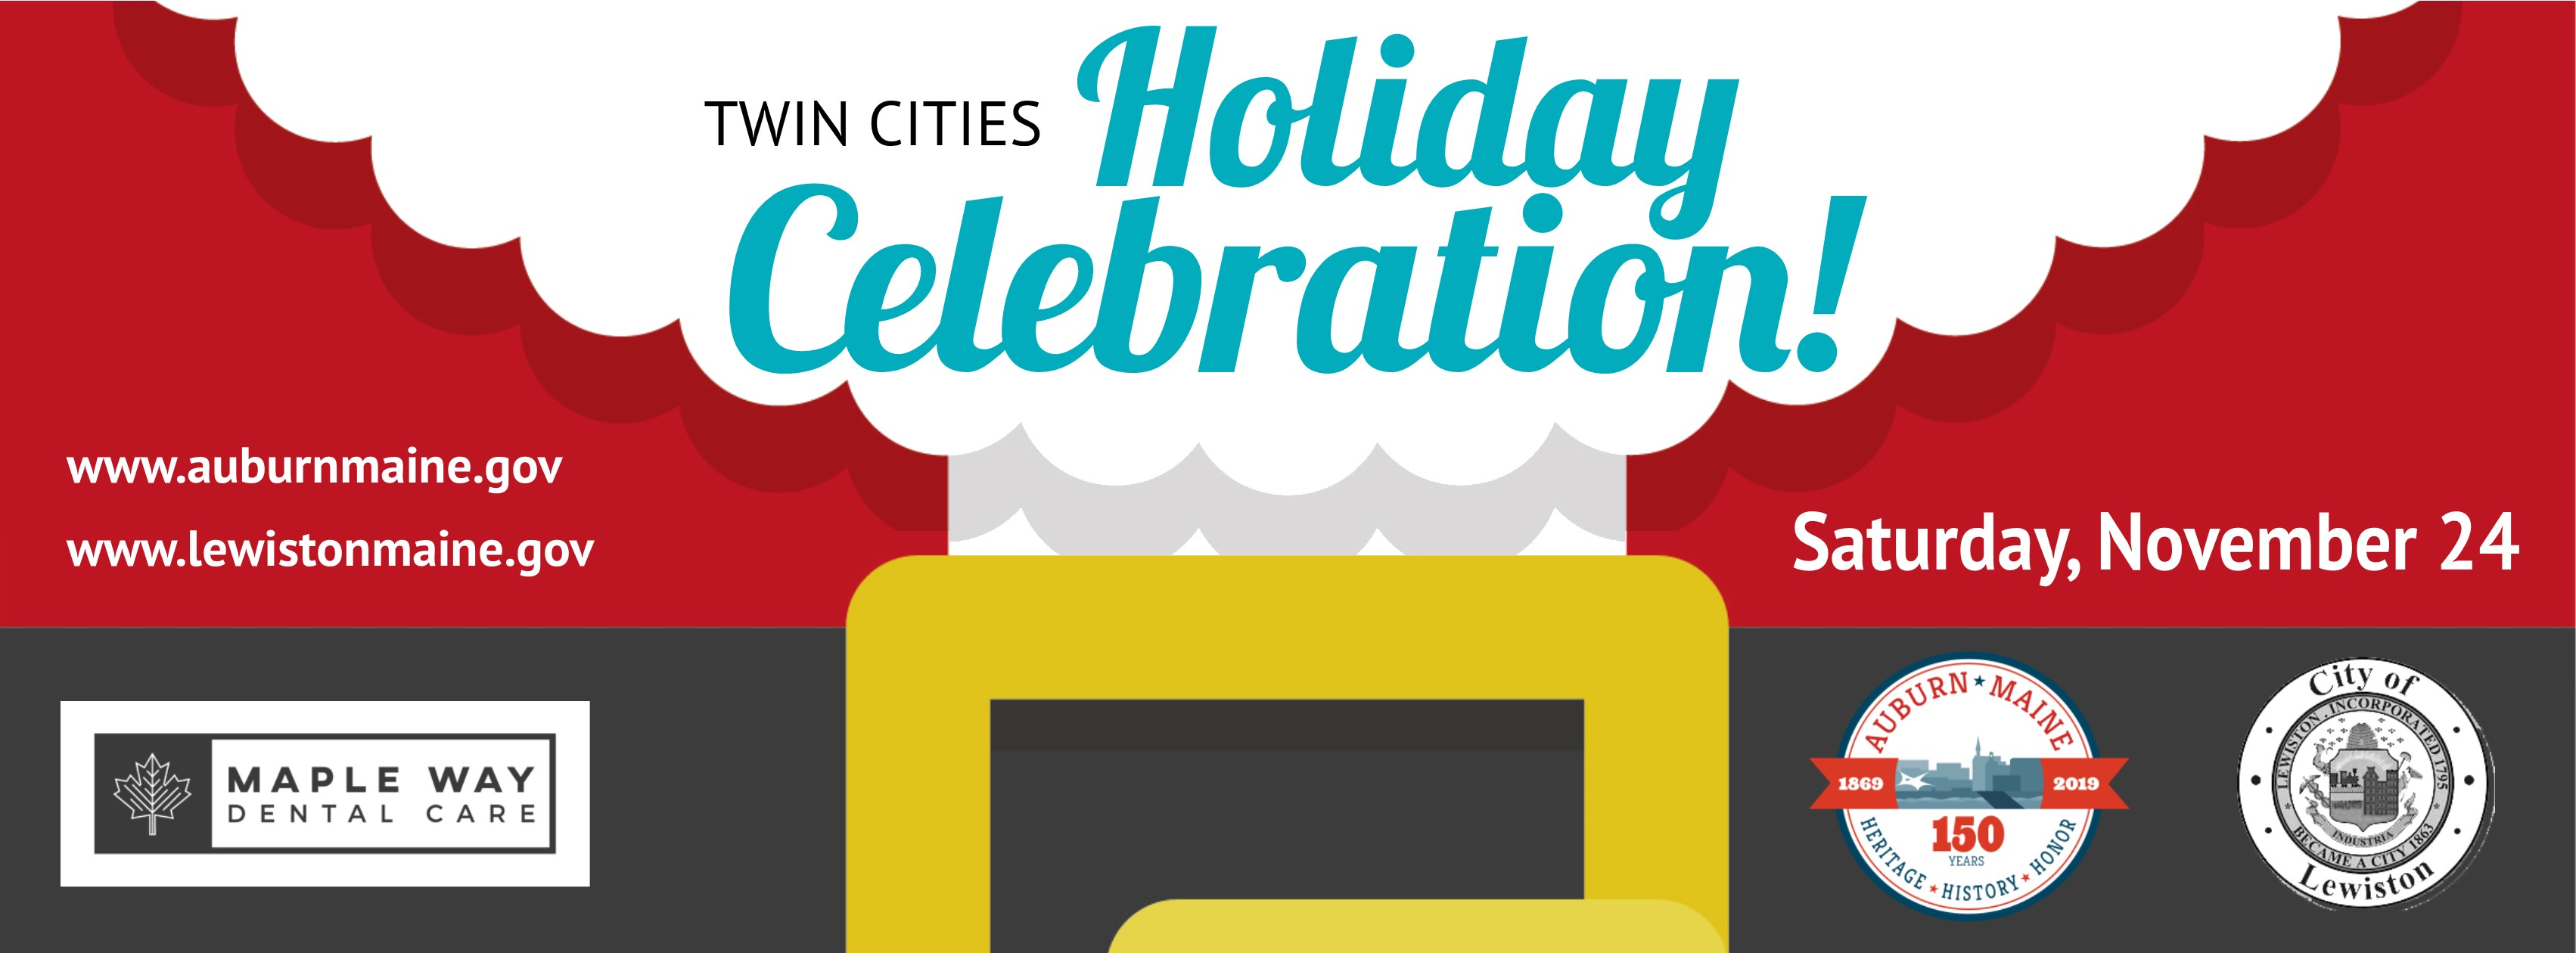 Twin Cities Holiday Celebration